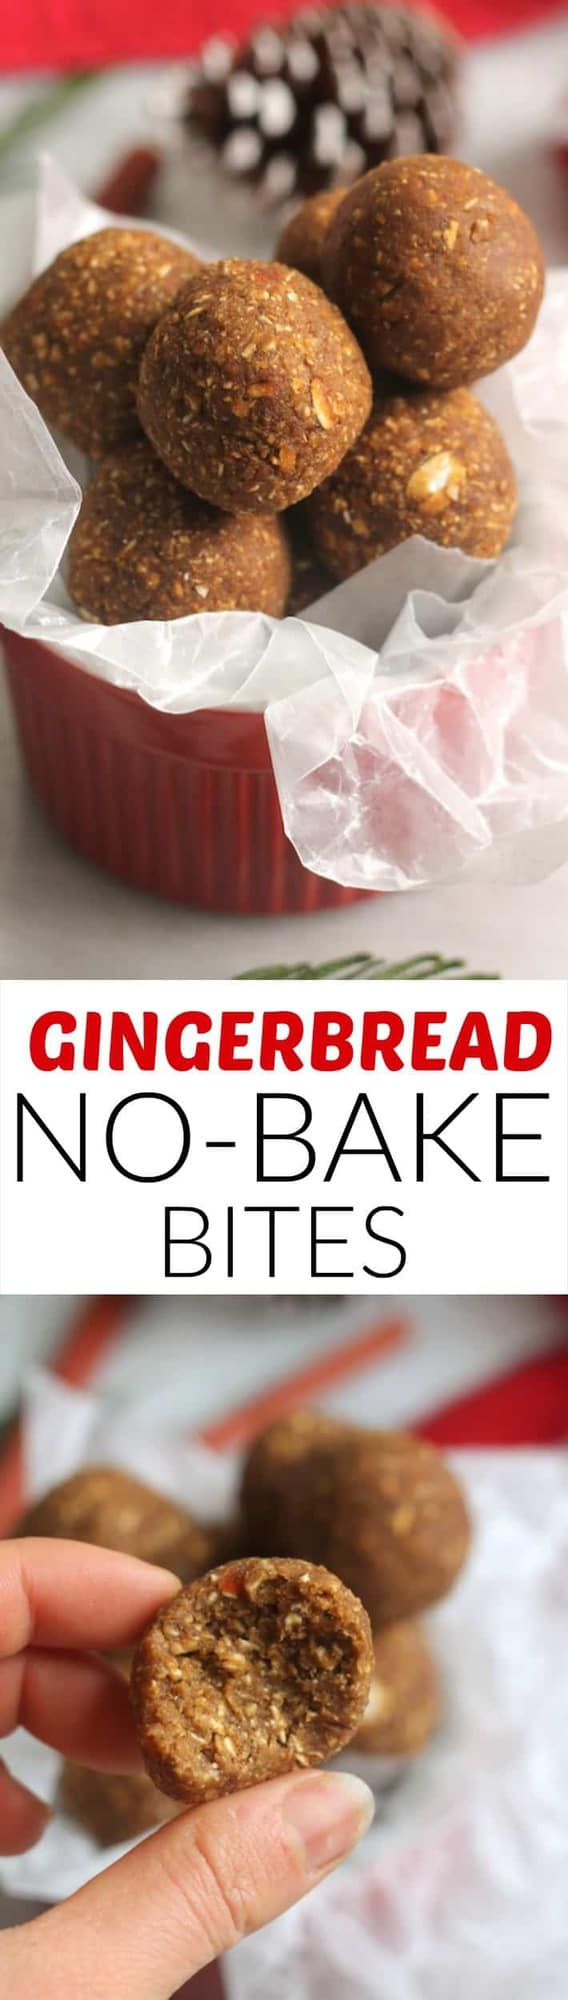 Gingerbread No-Bake Bites....a quick and easy treat that